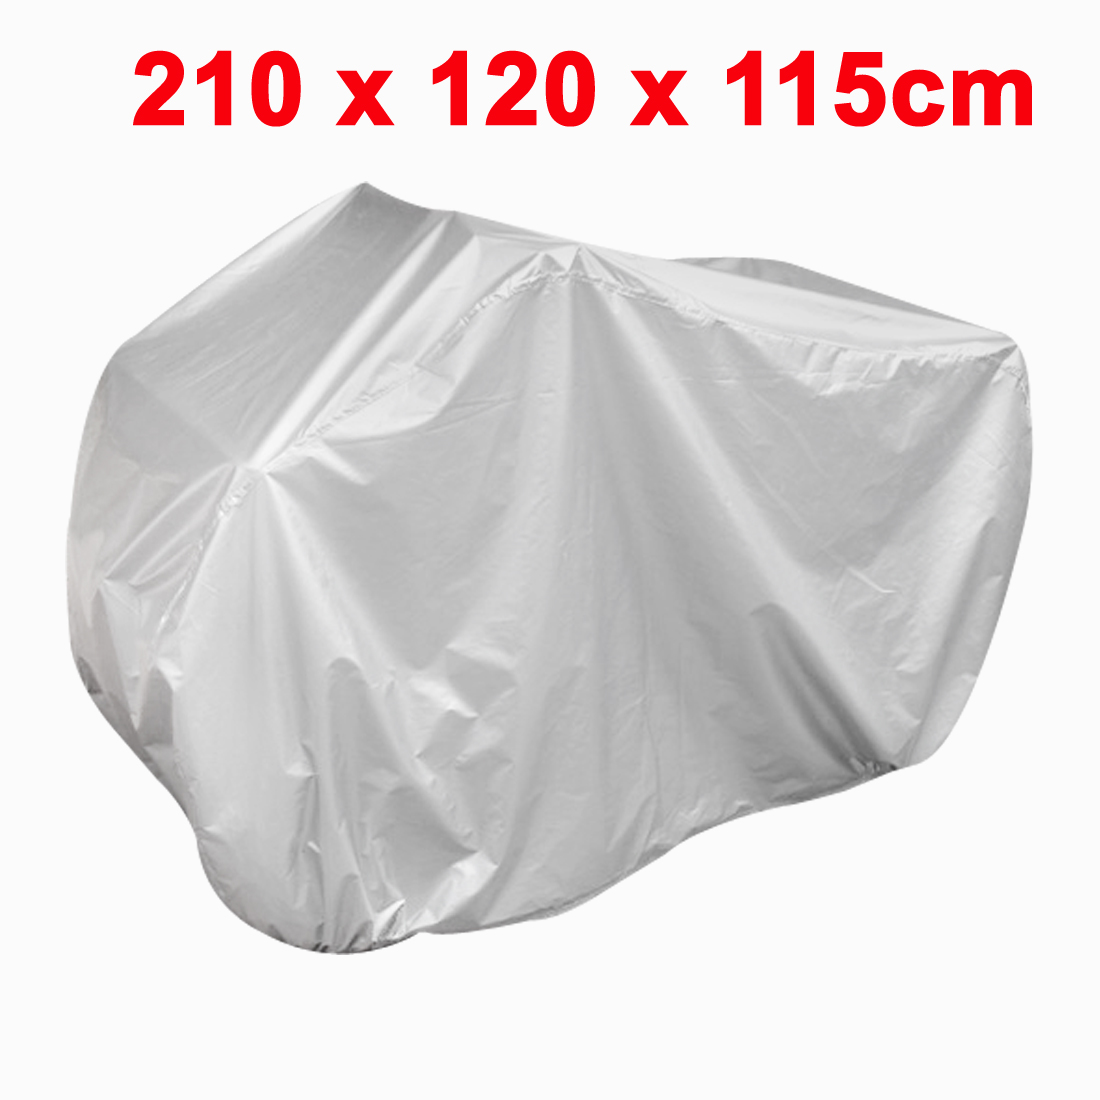 Silver Tone Rain Water Resistant Protective Quad Bike ATV Cover 210x120x115cm Discount 50(China (Mainland))